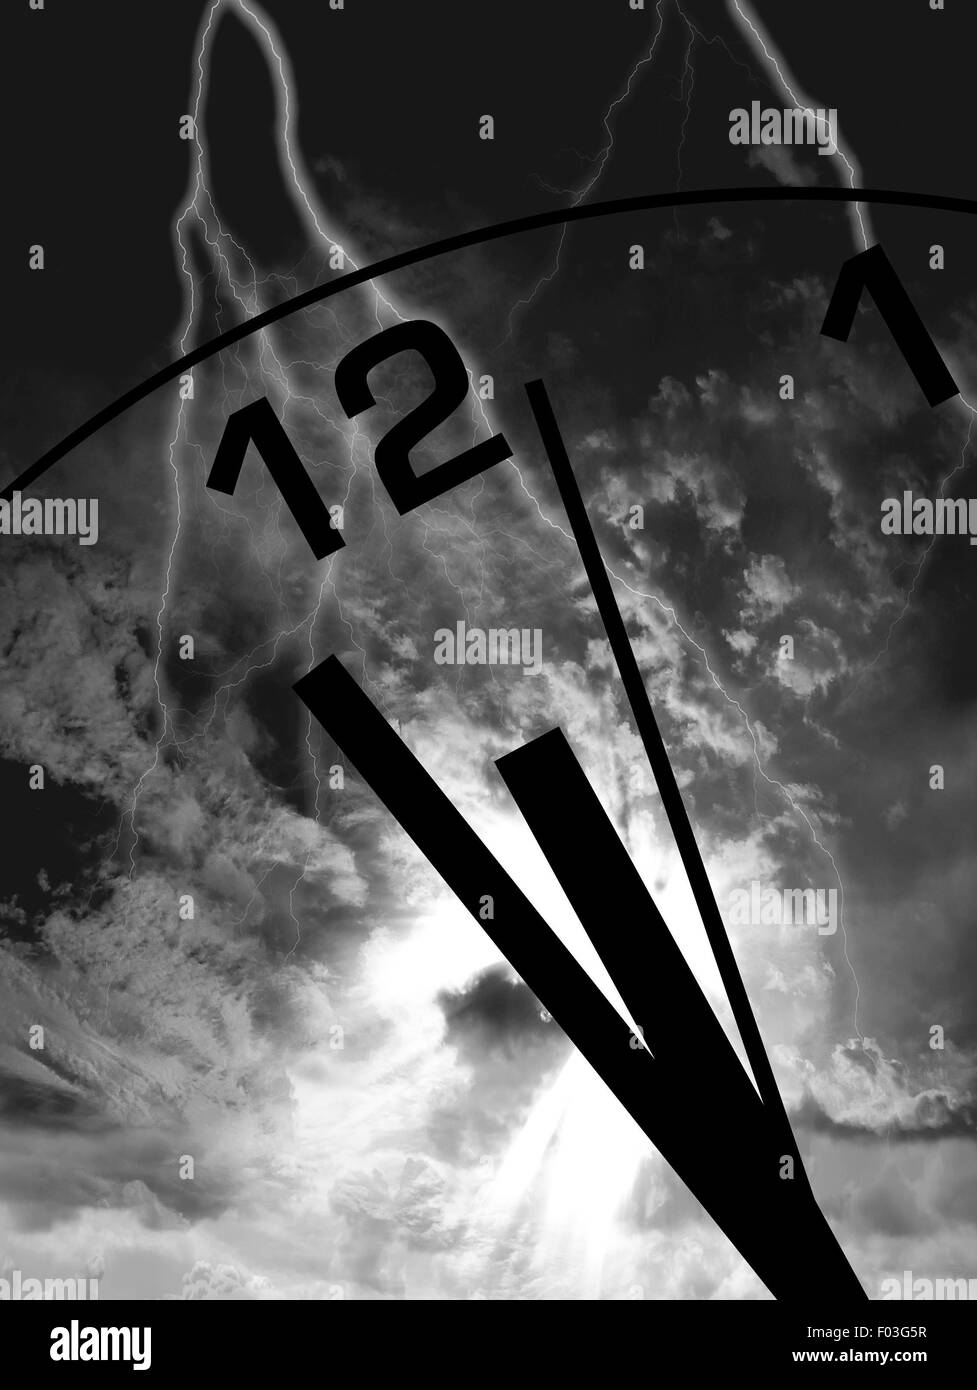 Ominous clouds gather as lightning strikes the clock as it hits midnight - Stock Image